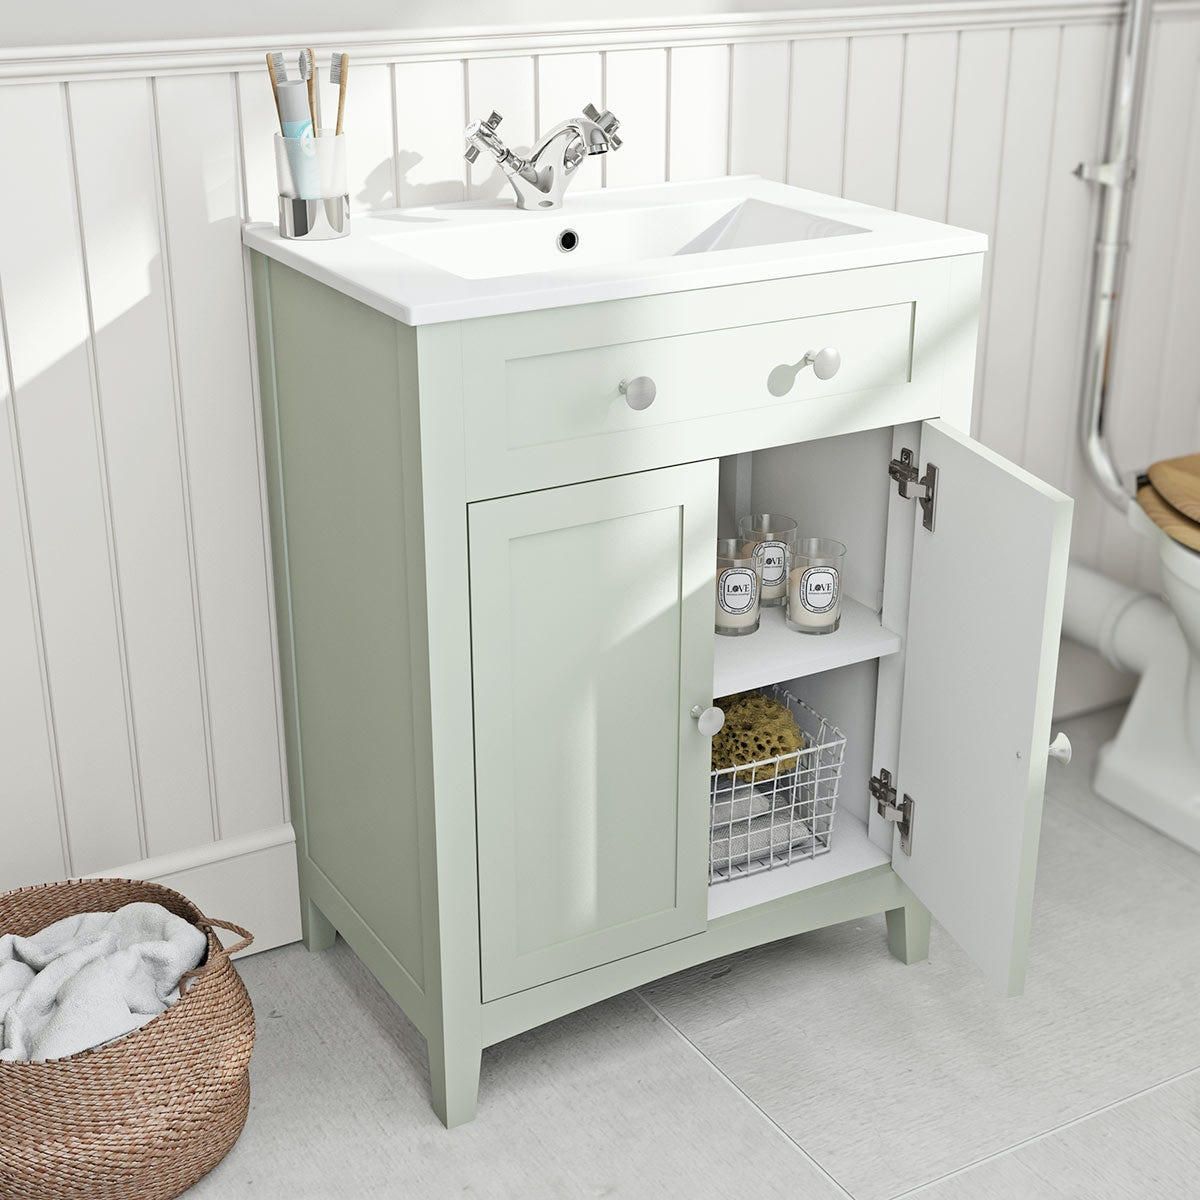 Camberley sage vanity unit with basin 600mm. The Bath Co  Camberley sage vanity unit with basin 600mm